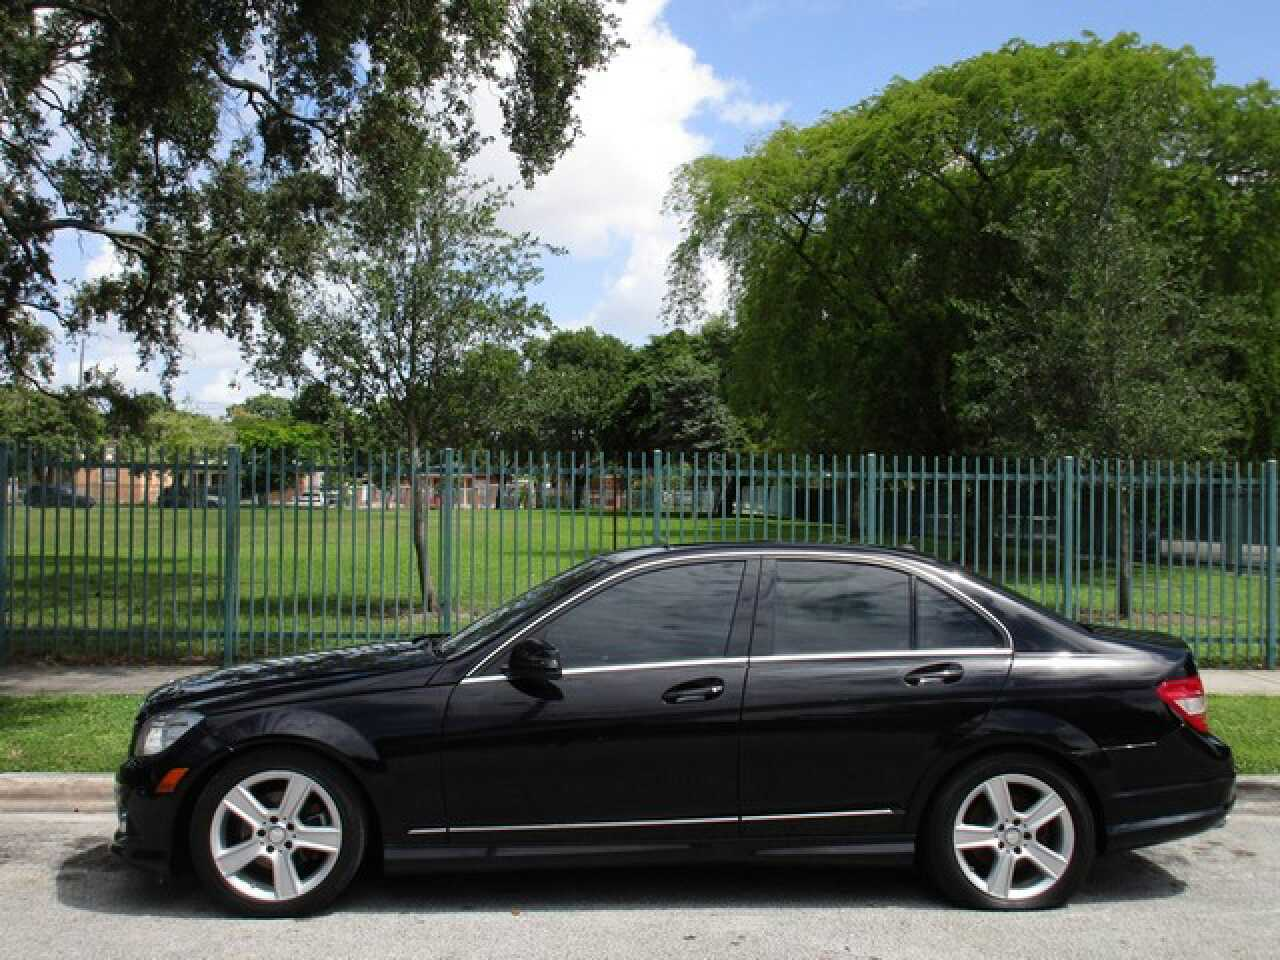 Letgo 2010 mercedes benz credit builde in seybold fl for Mercedes benz credit